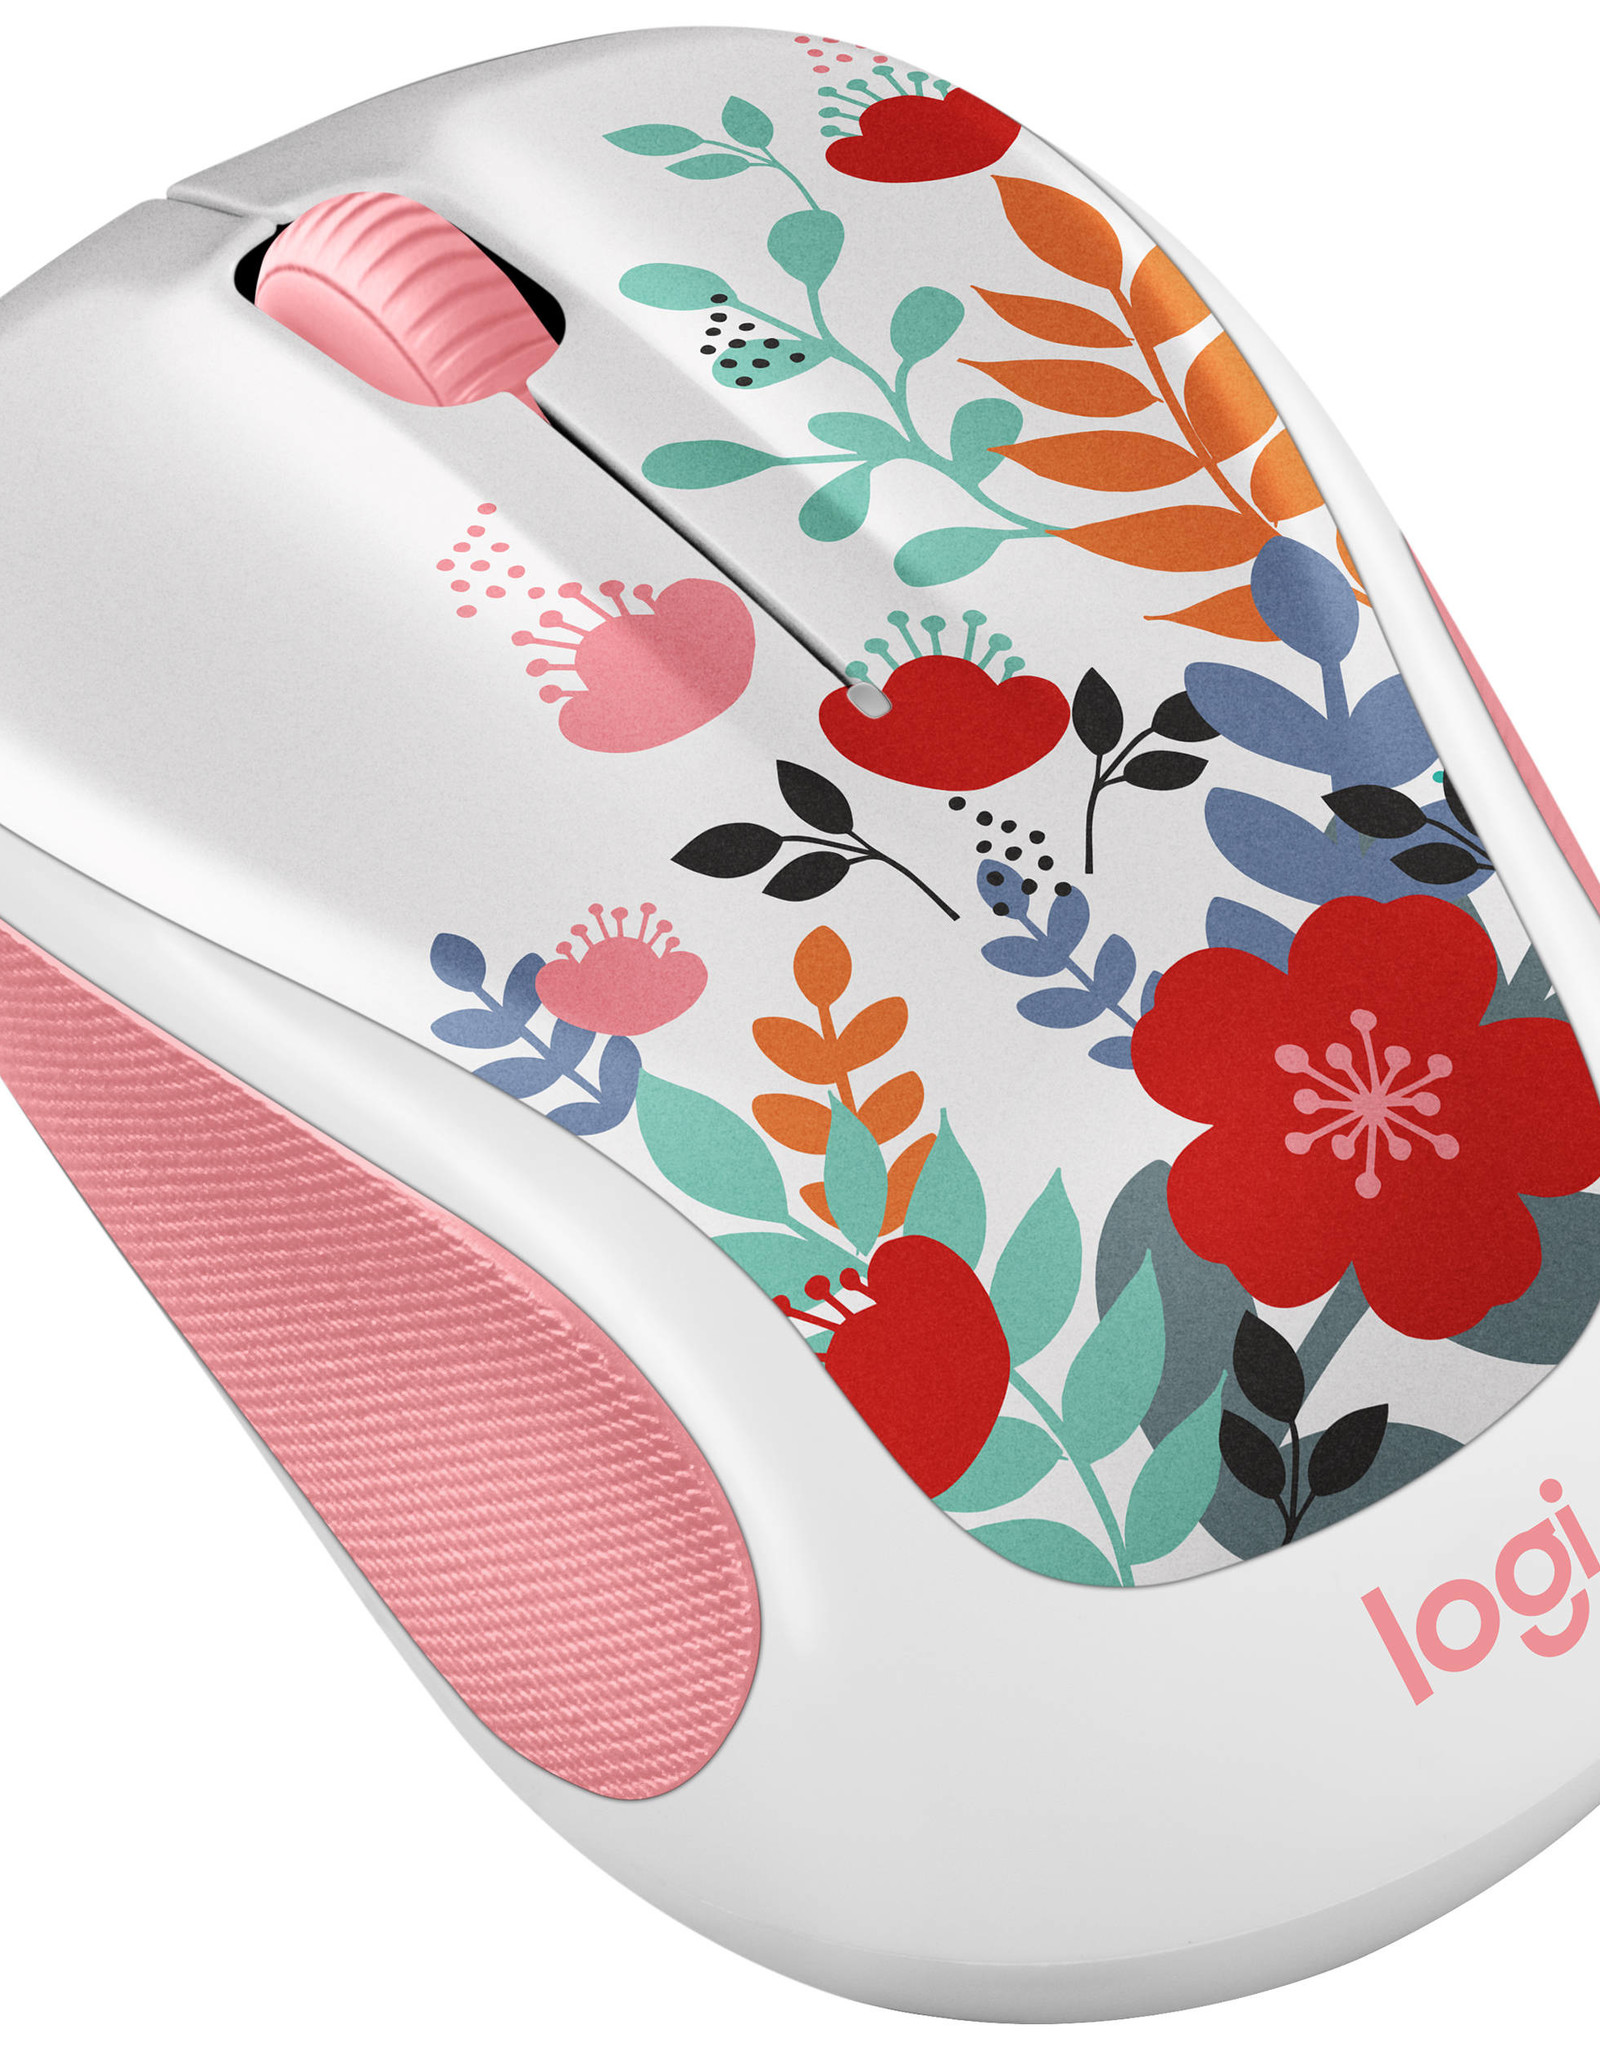 Logitech Logitech M325 Wireless Optical Mouse - Summer Bouquet 910-005656